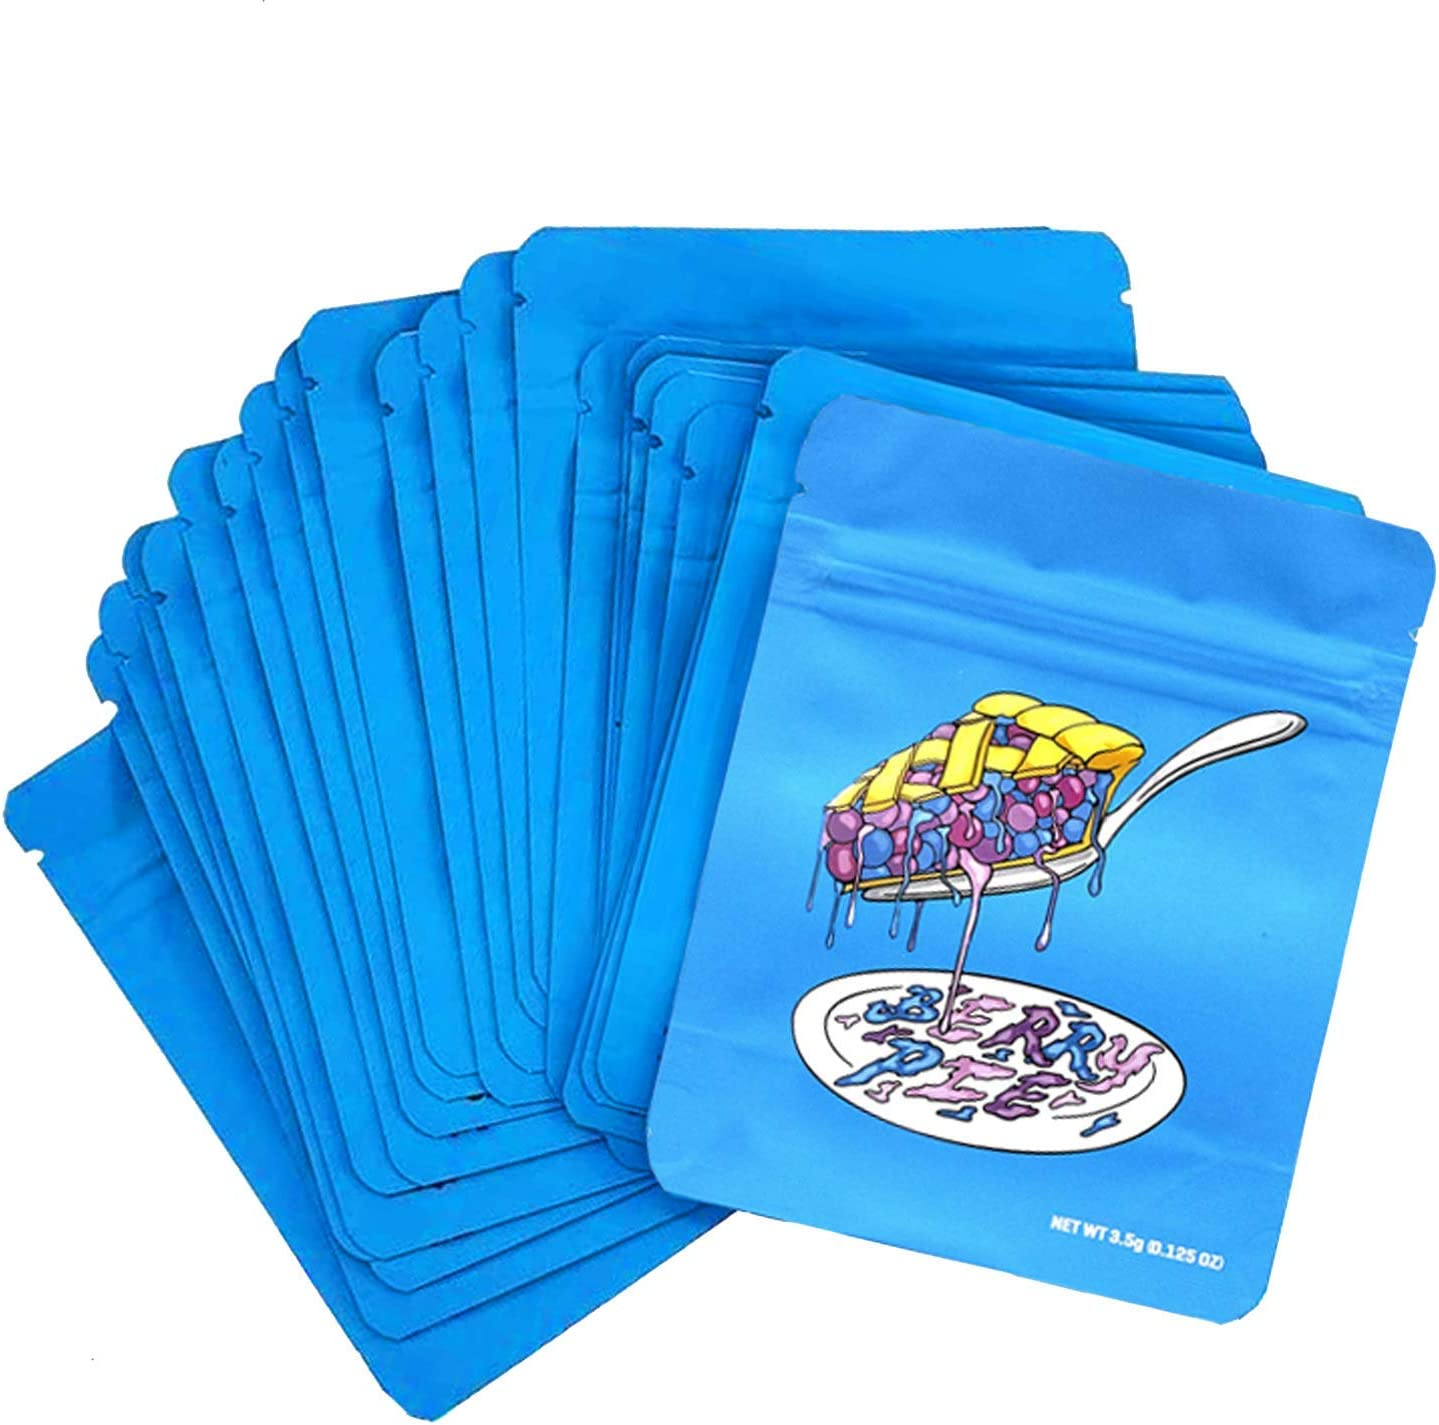 100 Pcs Cookies Pancakes Premium,HeatSeal Smellproof Mylar Bags Resealable Stand-up Ziplock Foil Bags wIth Holo Stickers and Labels,Food Safe Plastic Aluminum Material